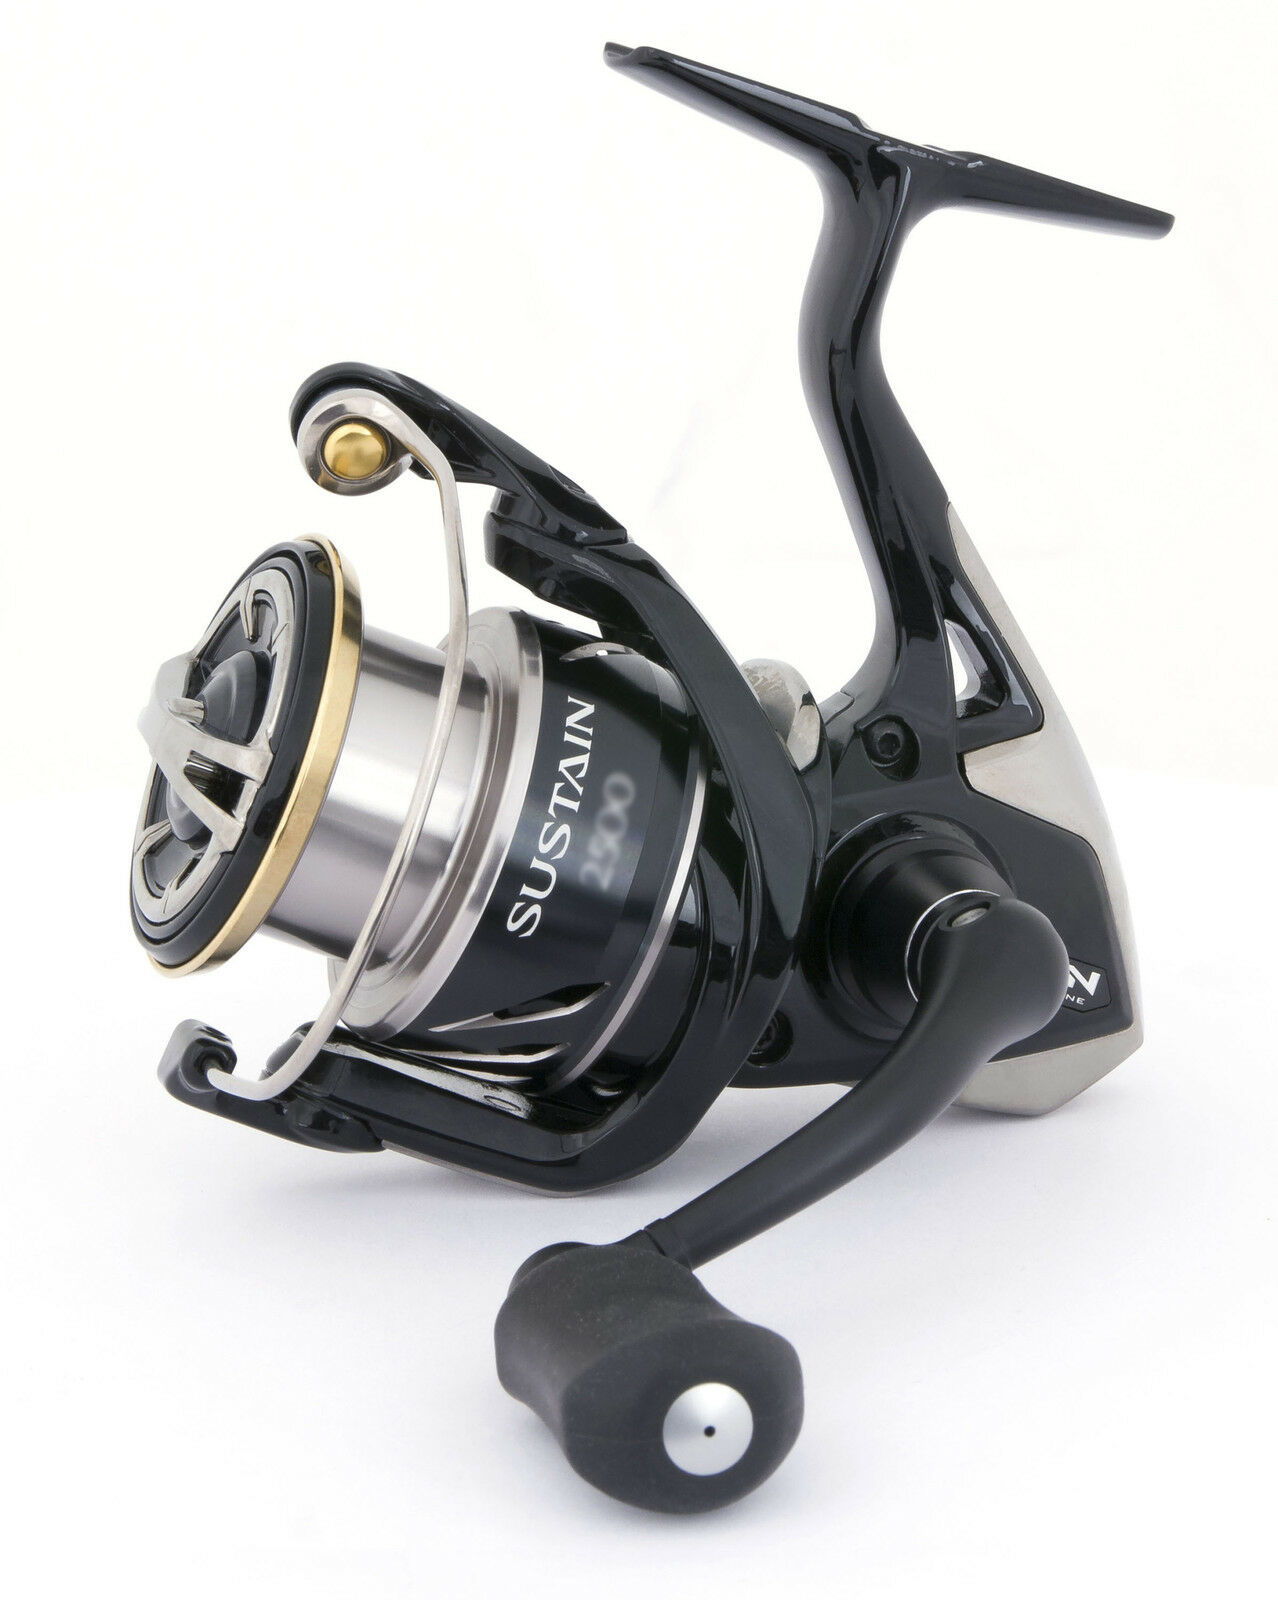 Shimano Sustain FI 4000XG Spinning Reel SA4000XGFI - FREE SHIPPING  -  perfect